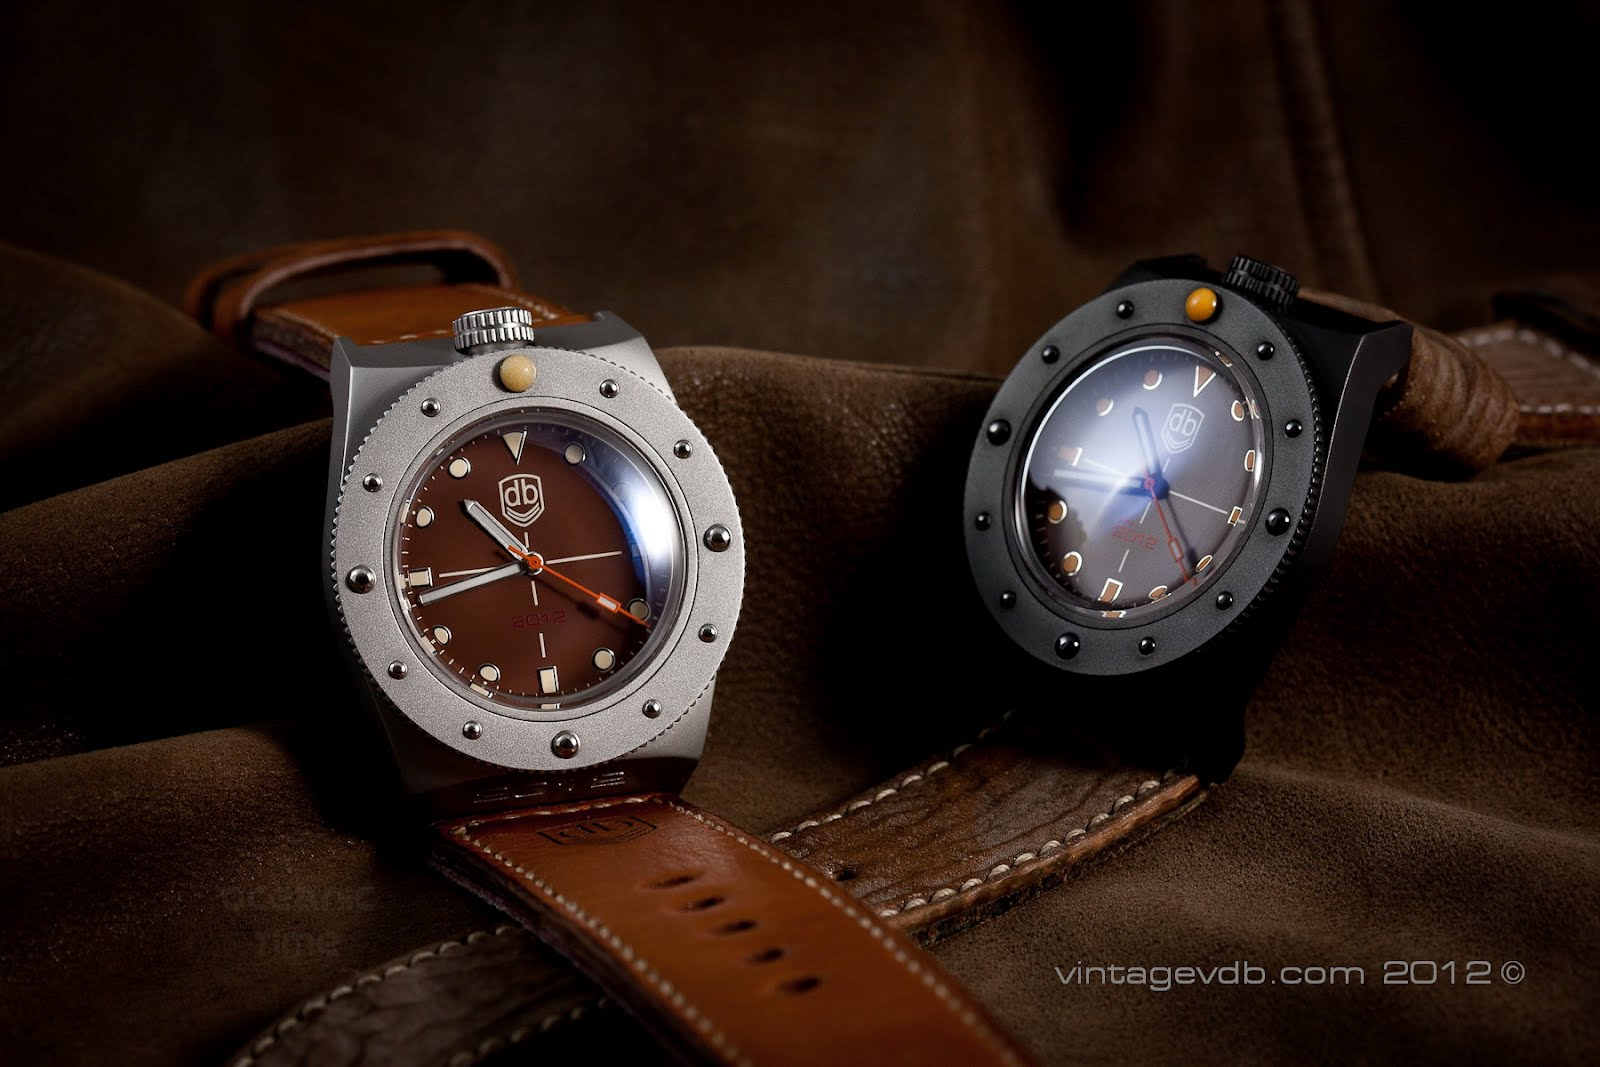 Watch magazine vintagevdb 2012 proto 39 s for Protos watches